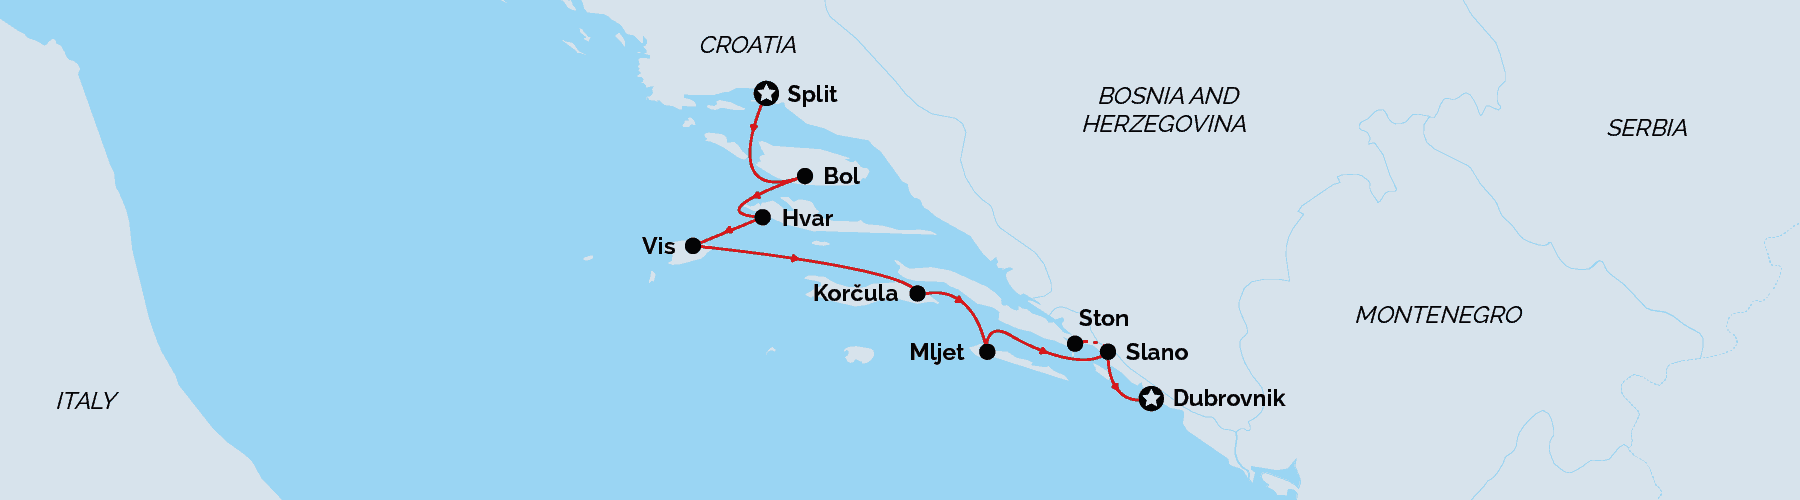 Cruise Map - Split to Dubrovnik, Luxury Cruise Croatia